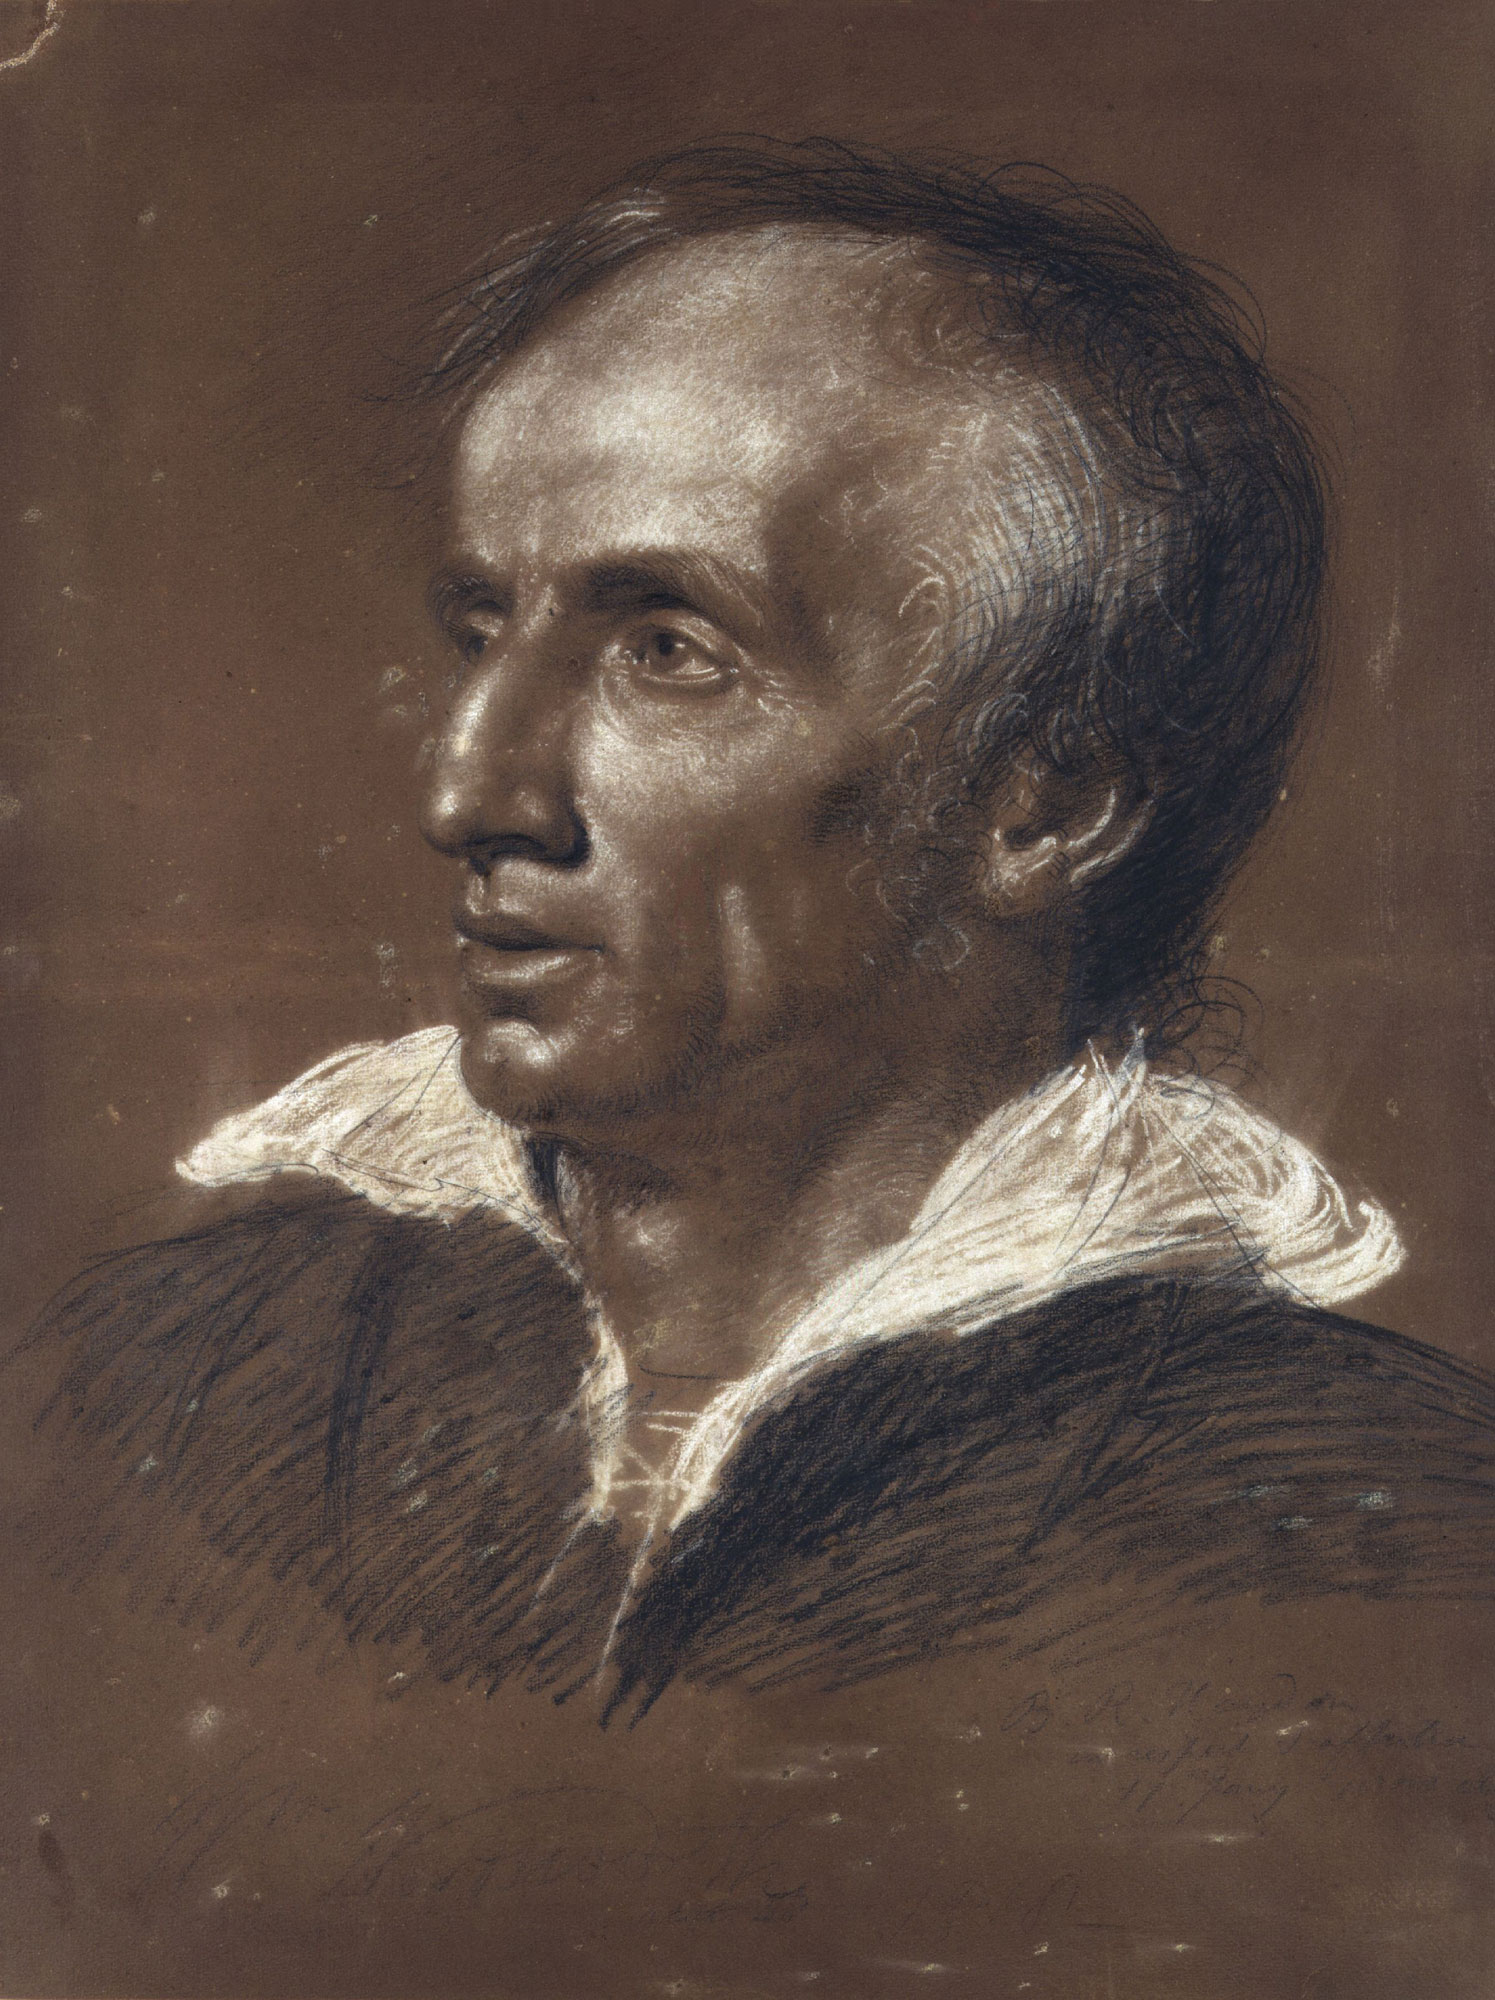 William Wordsworth, author of 'I wandered Lonely as a Cloud'. Portrait by Benjamin Robert Haydon © National Portrait Gallery, London.